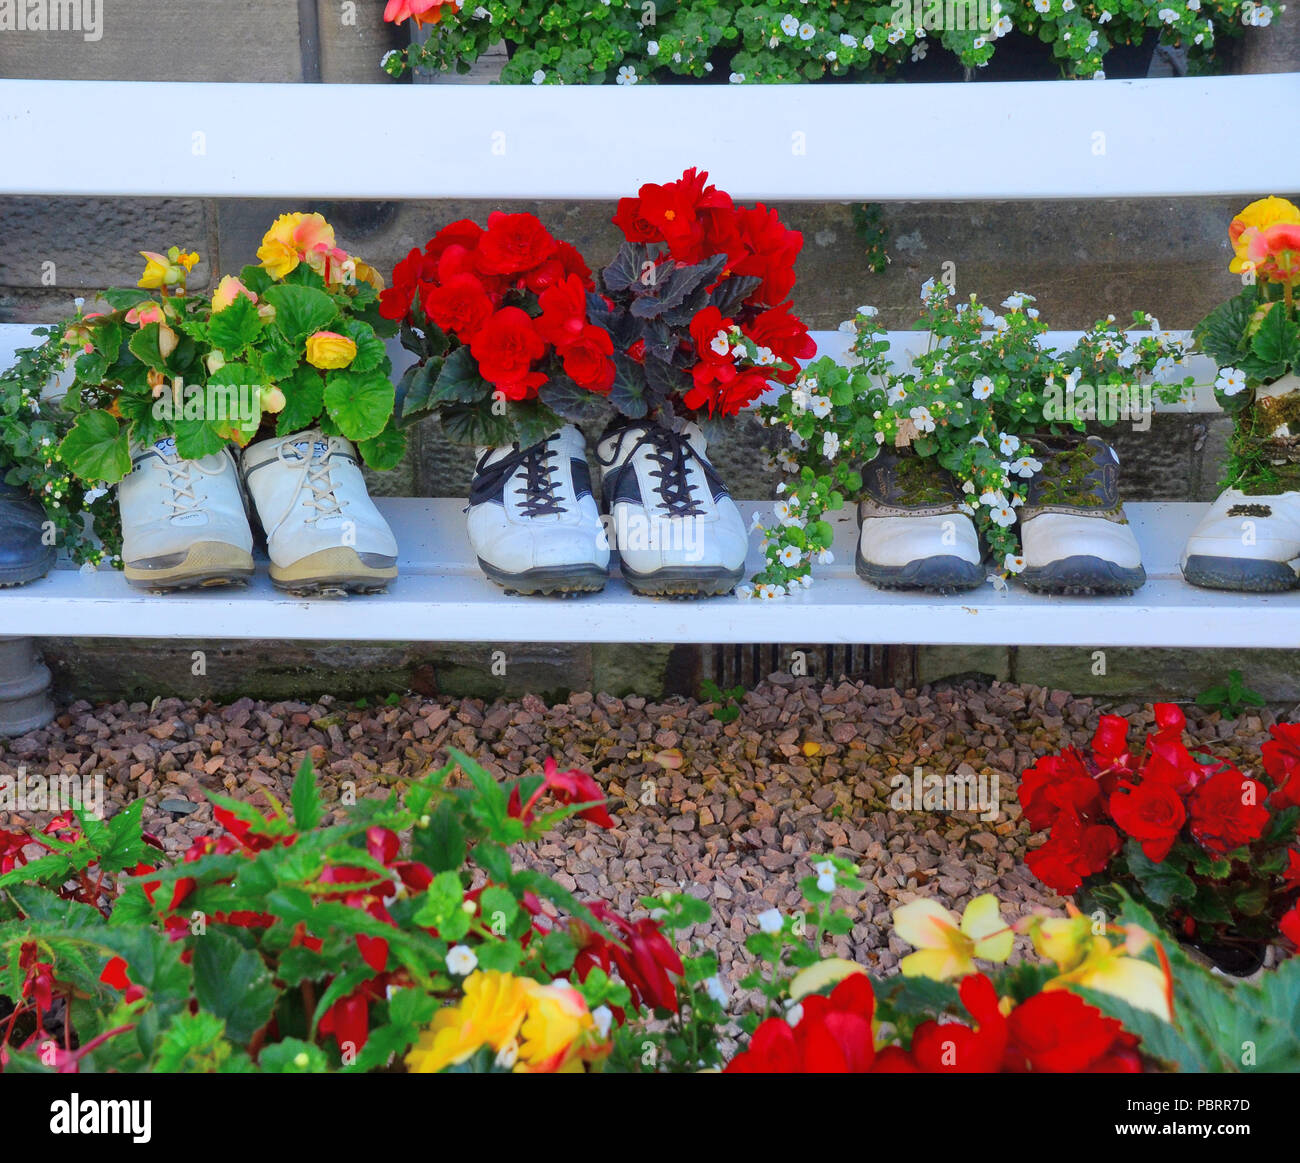 Row of famous golfers shoes used as flower pots displaying a variety of potted flowering plants  in St Andrews,  Scotland - Stock Image